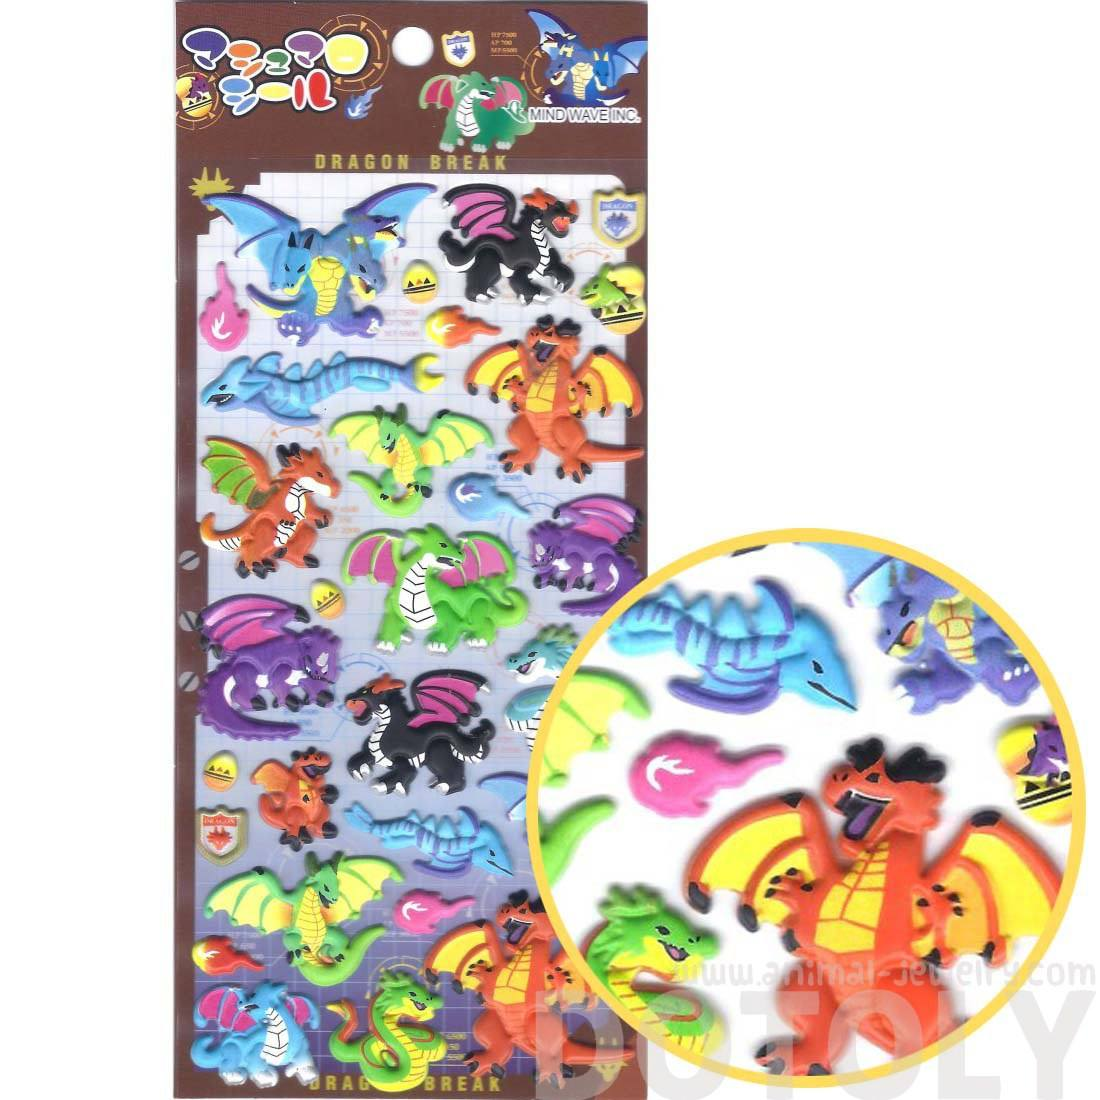 Fire Breathing Dragons Shaped Mythical Creatures Themed Puffy Stickers